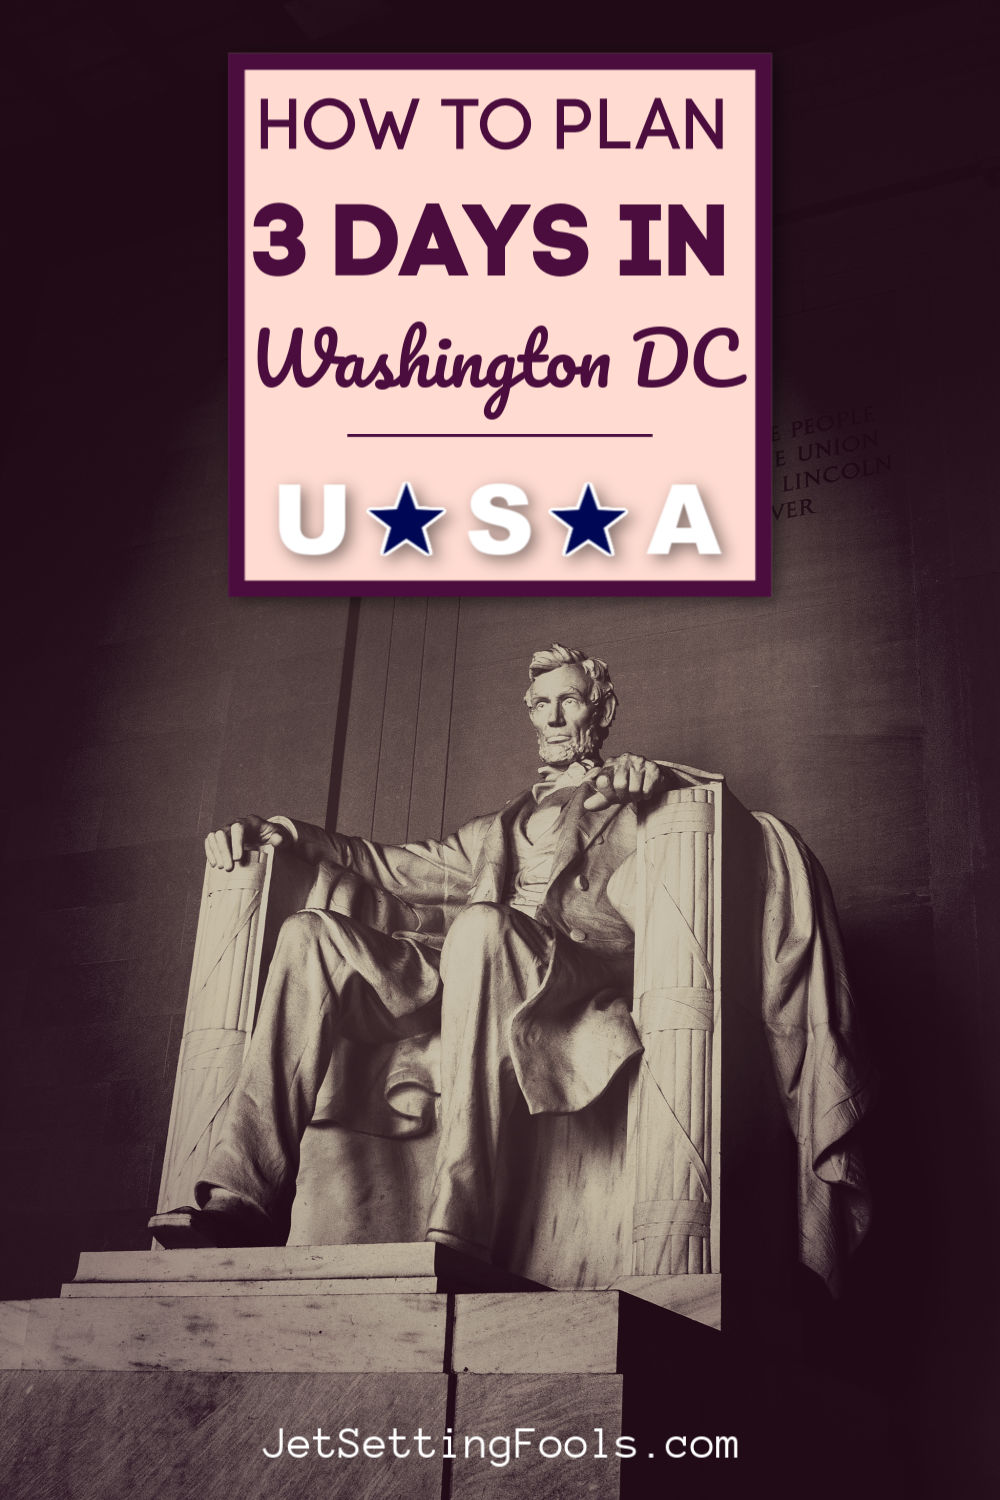 How to plan 3 Days in Washington DC by JetSettingFools.com